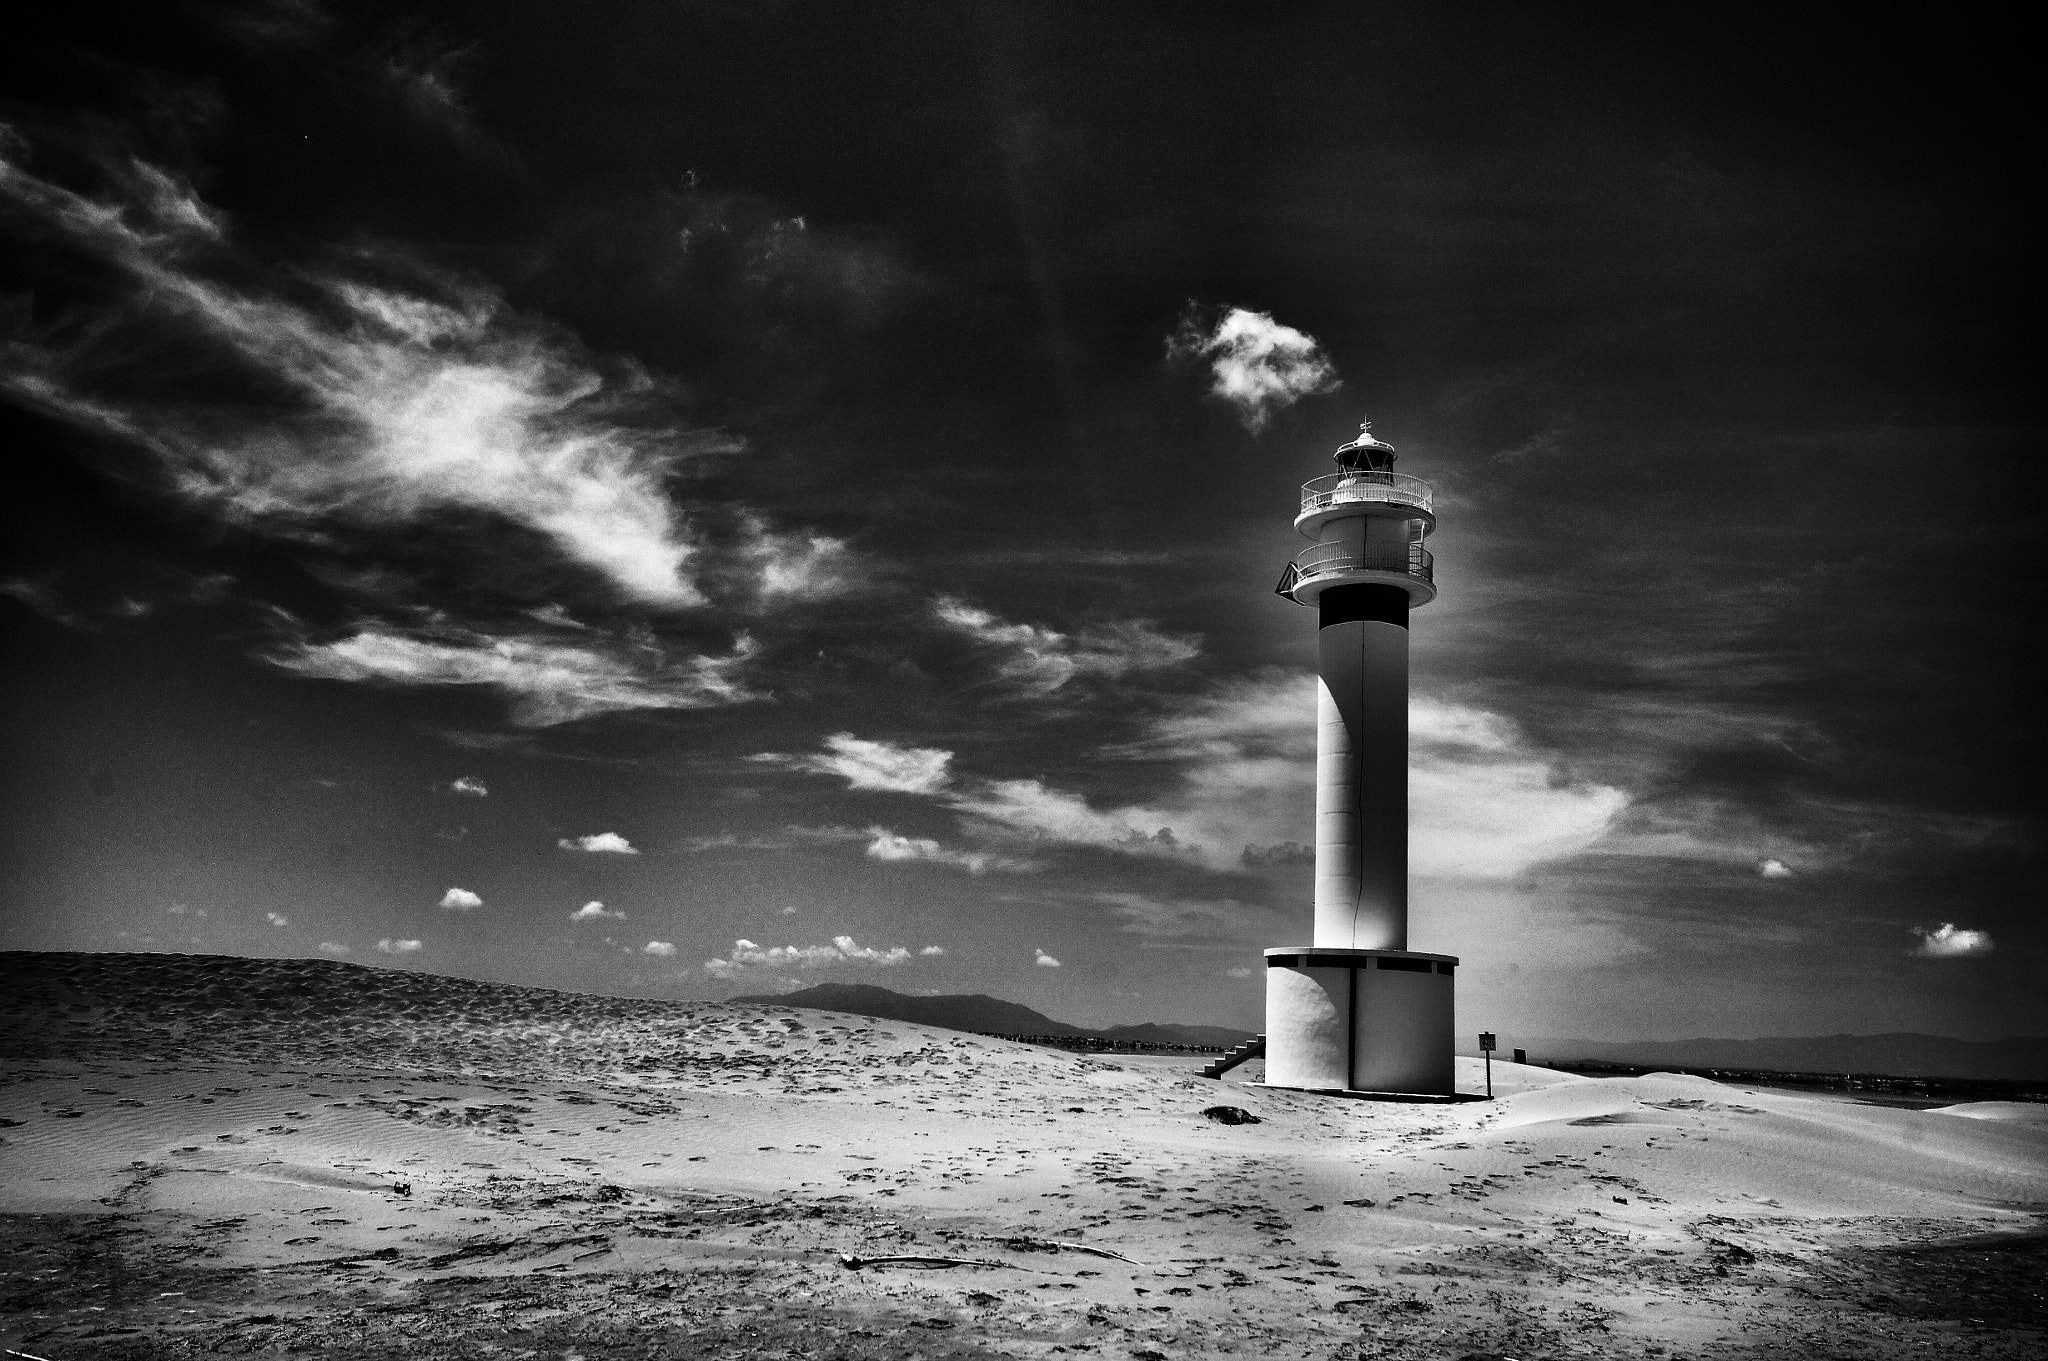 Photograph Lighthouse, Delta de l'Ebre by JJ Nugent on 500px